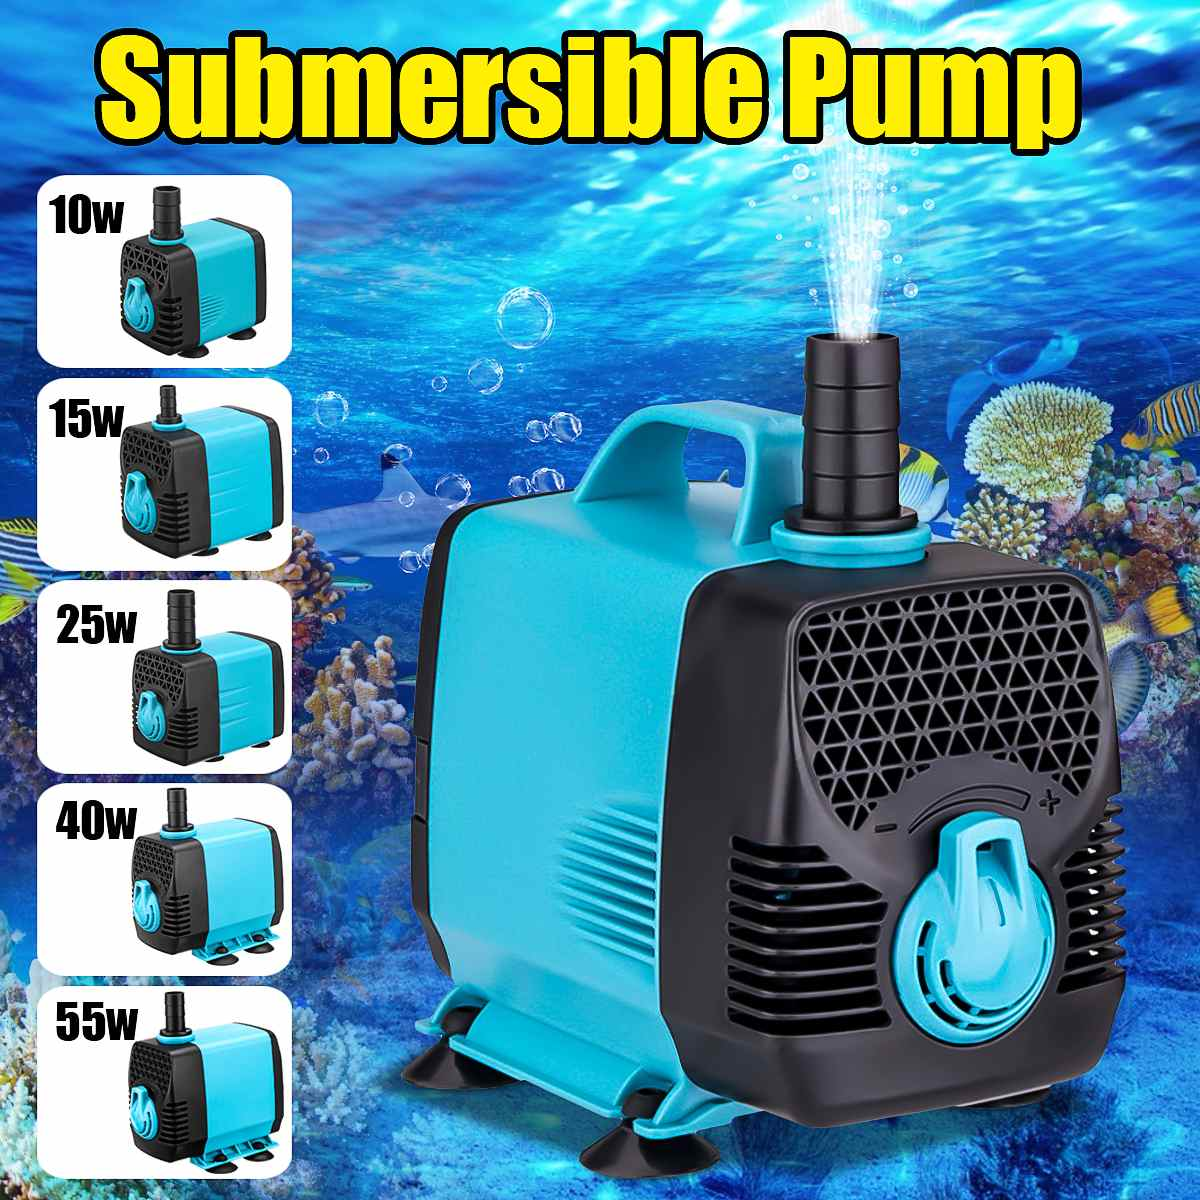 110-220V 10-55W Multifunctional Aquarium Water Pumps Tank Pond Pool Fountains Pump Waterproof Submersible Fish Pond Water Pump